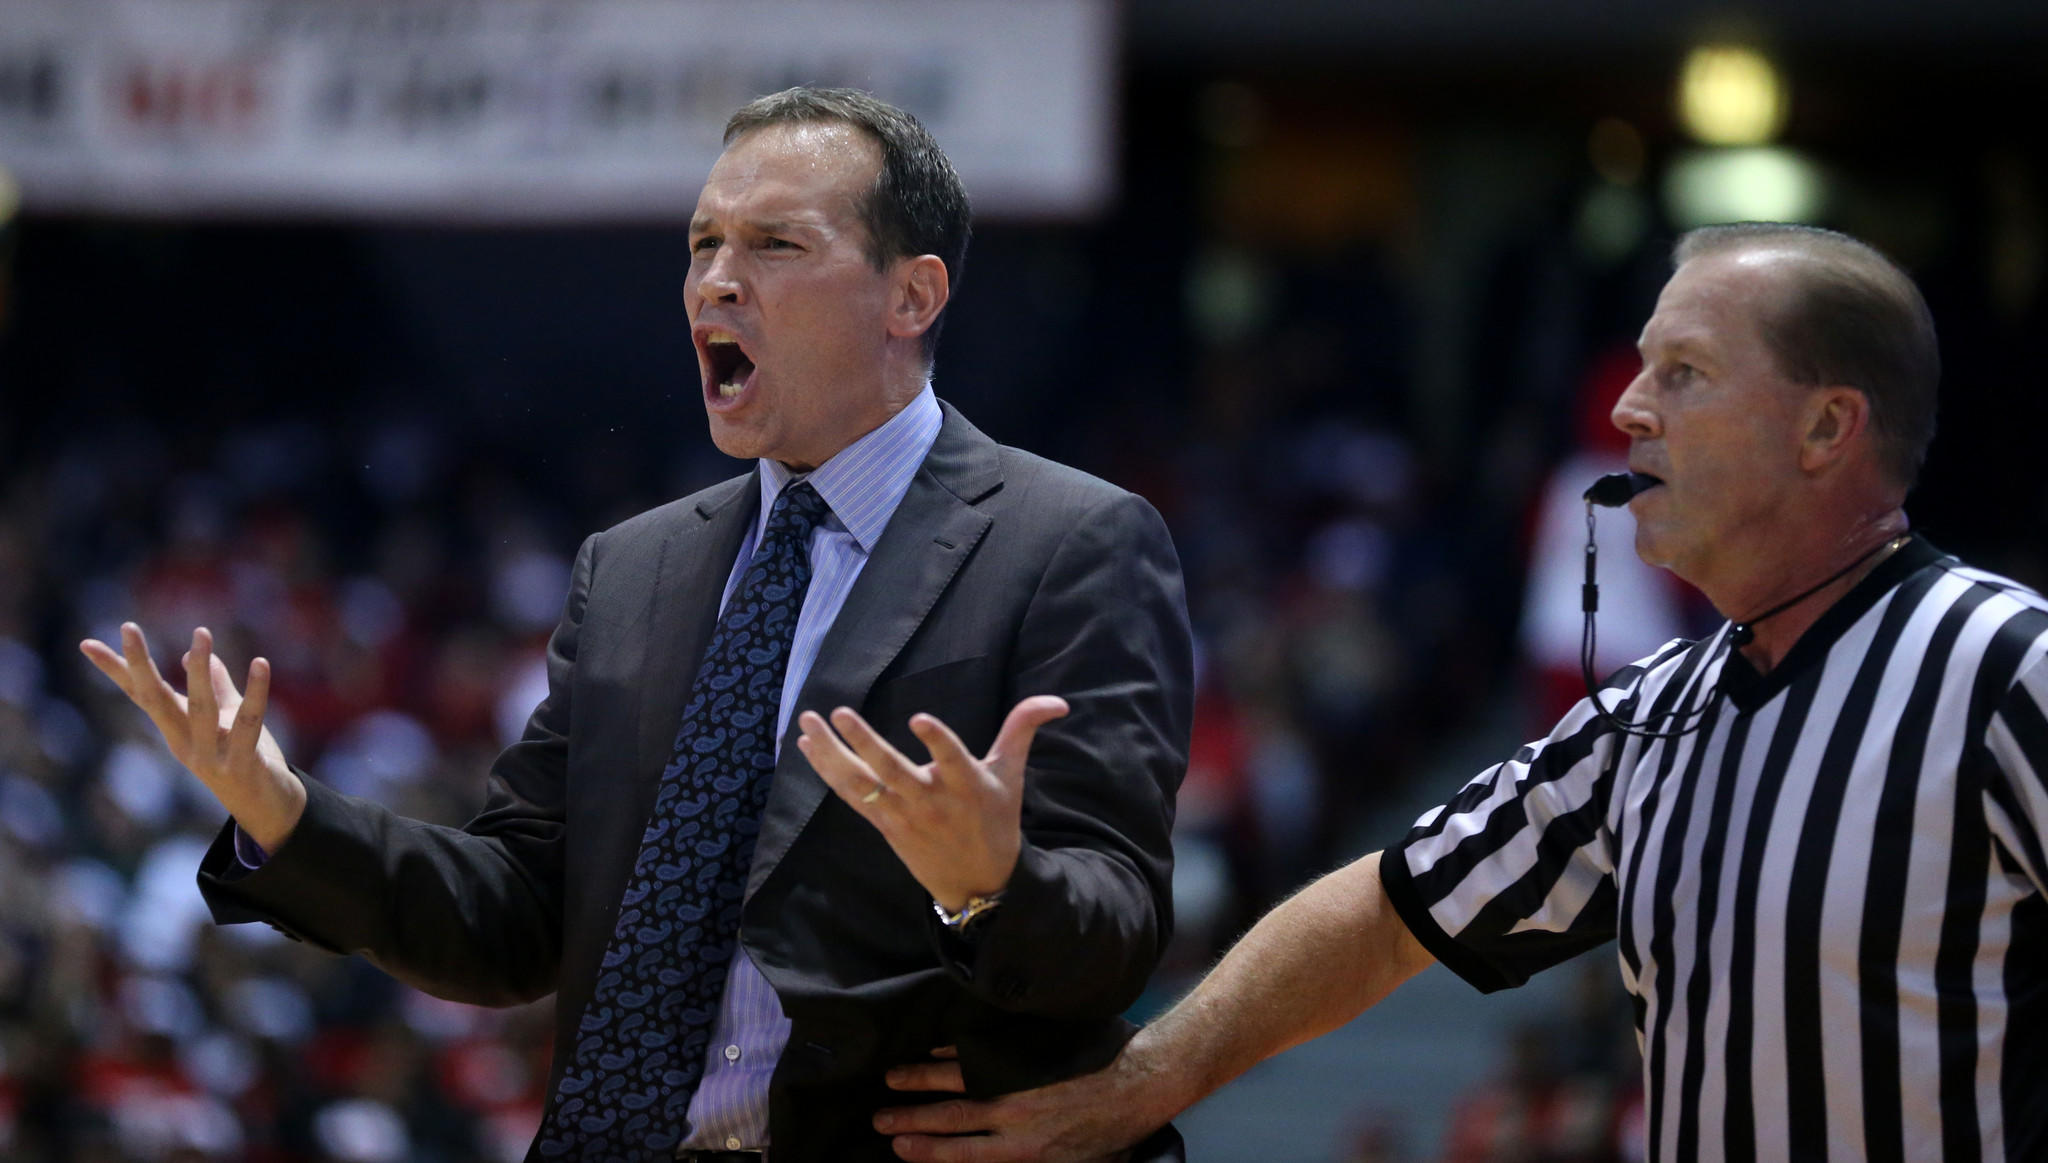 A referee holds back Northwestern basketball coach Chris Collins as he yells at his team in the first half against UIC.